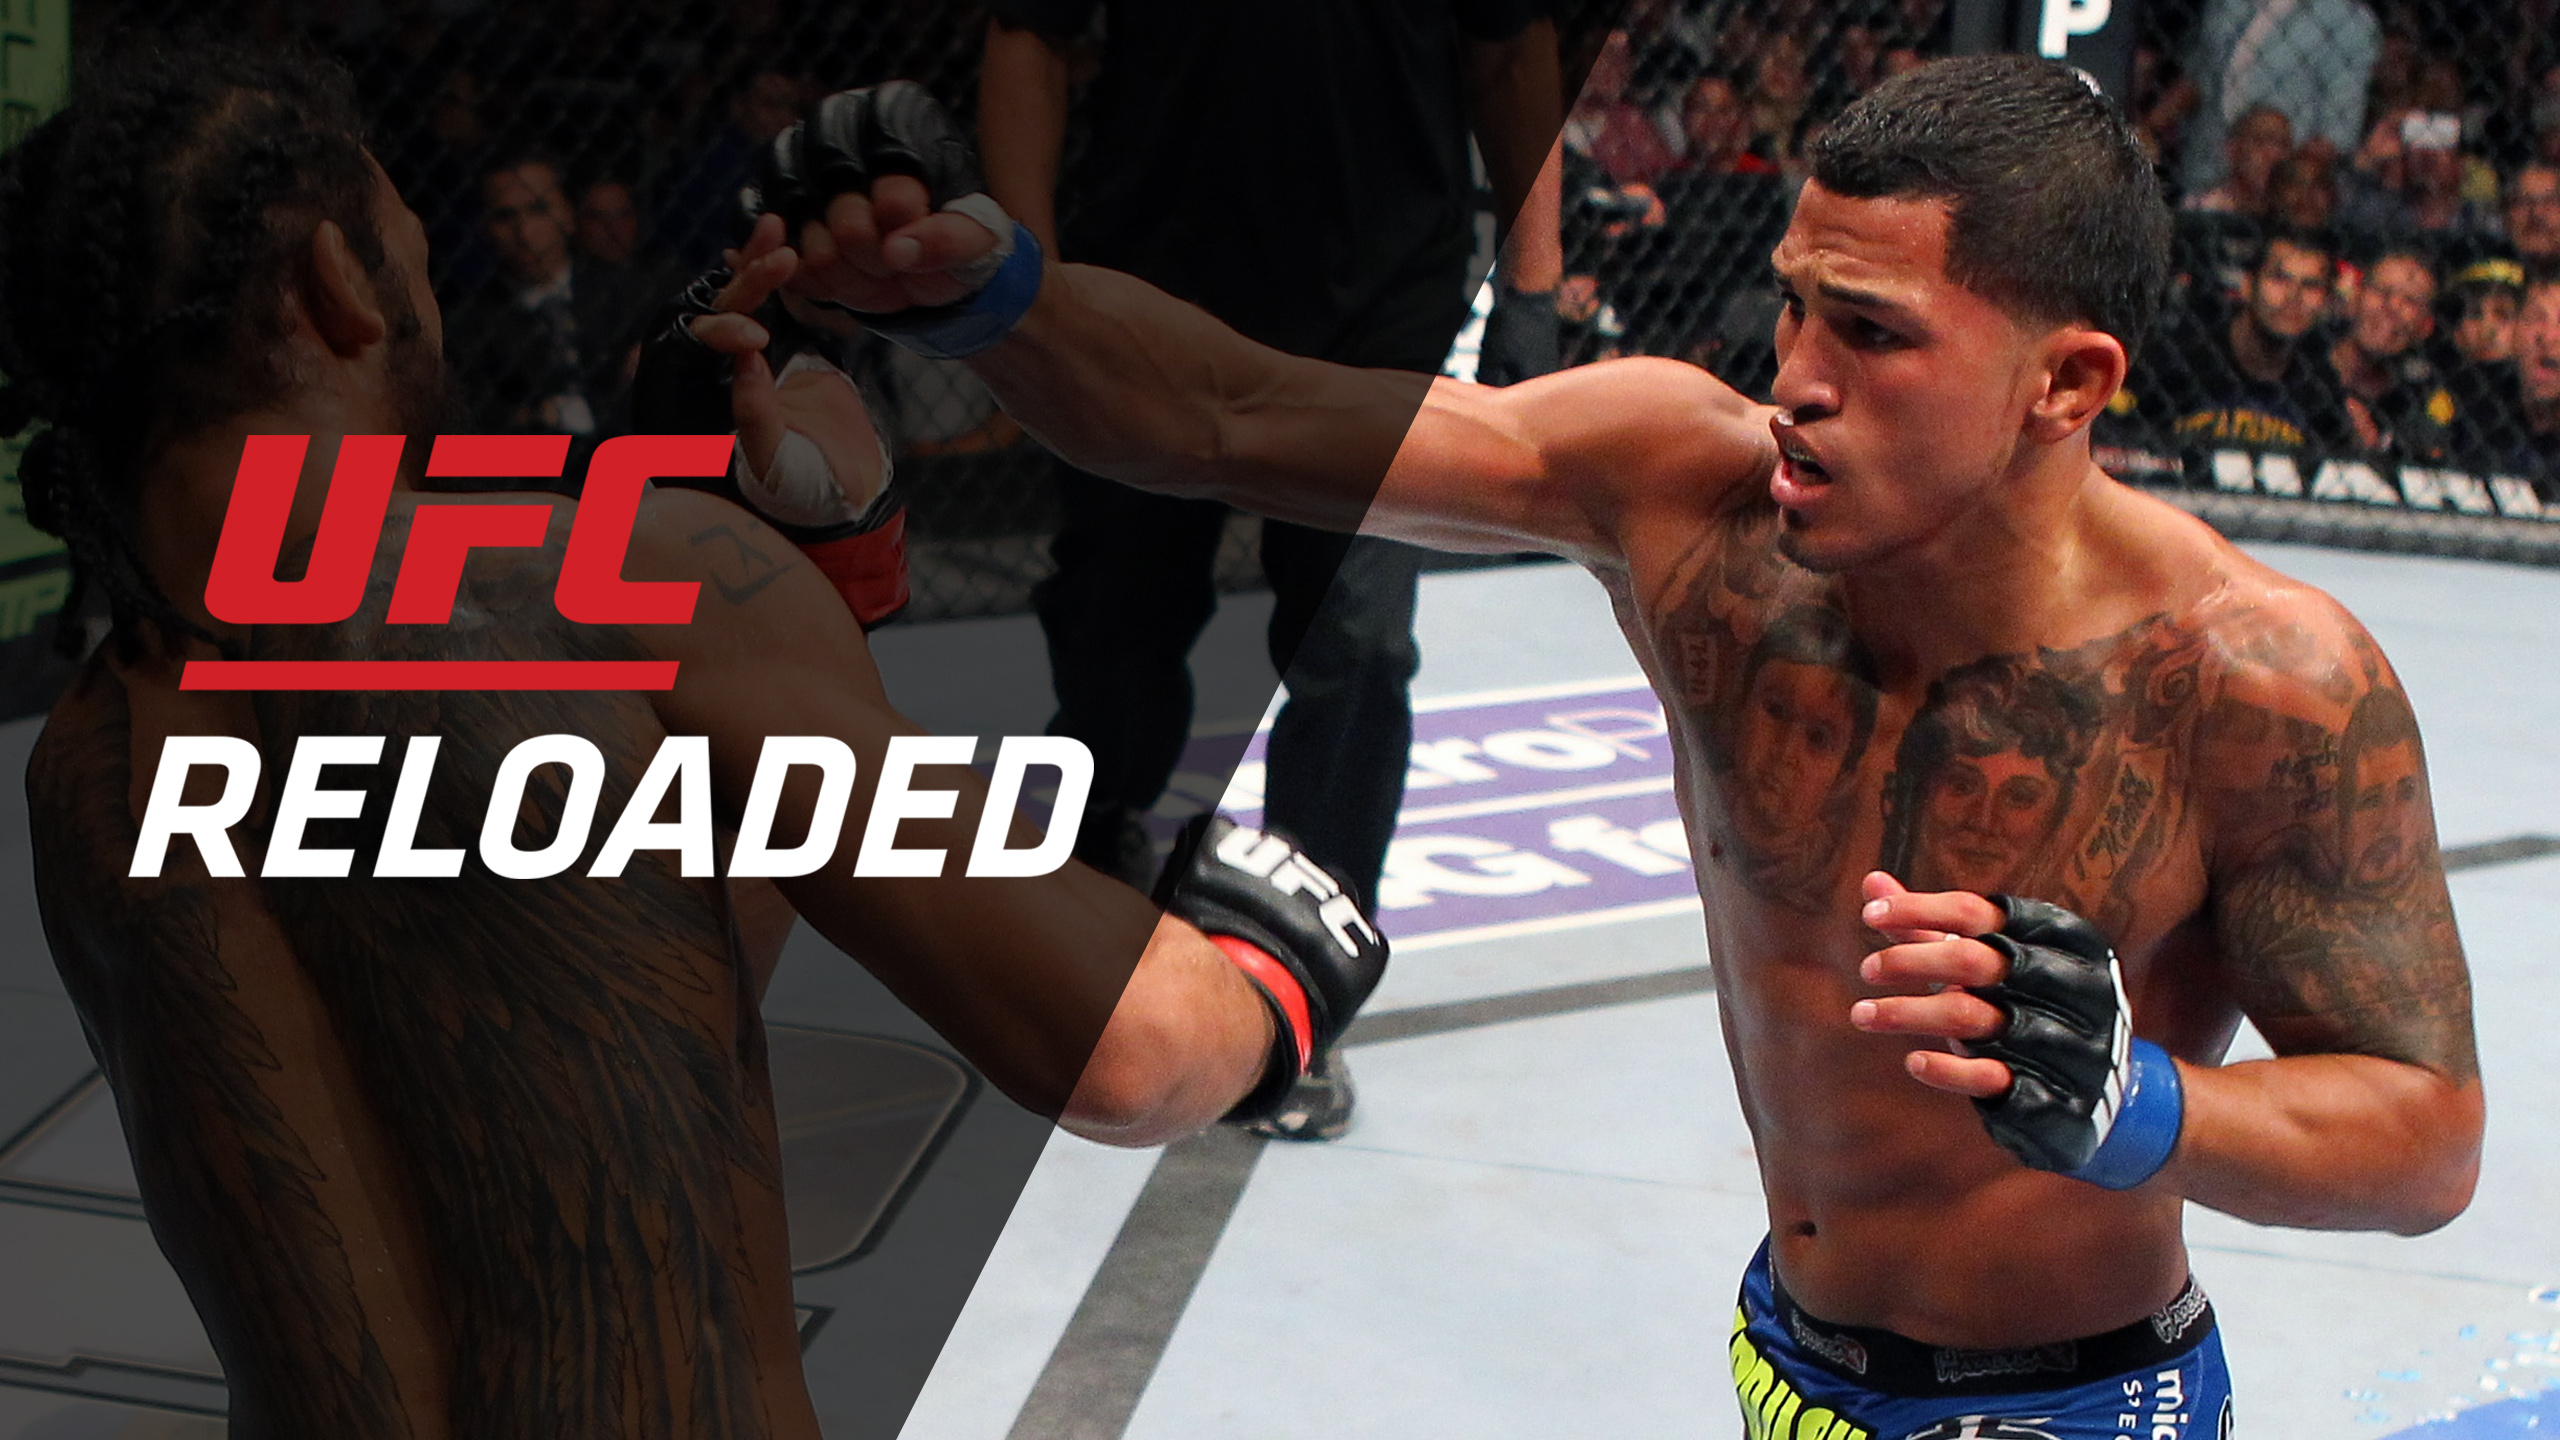 UFC Reloaded: 164: Henderson vs. Pettis